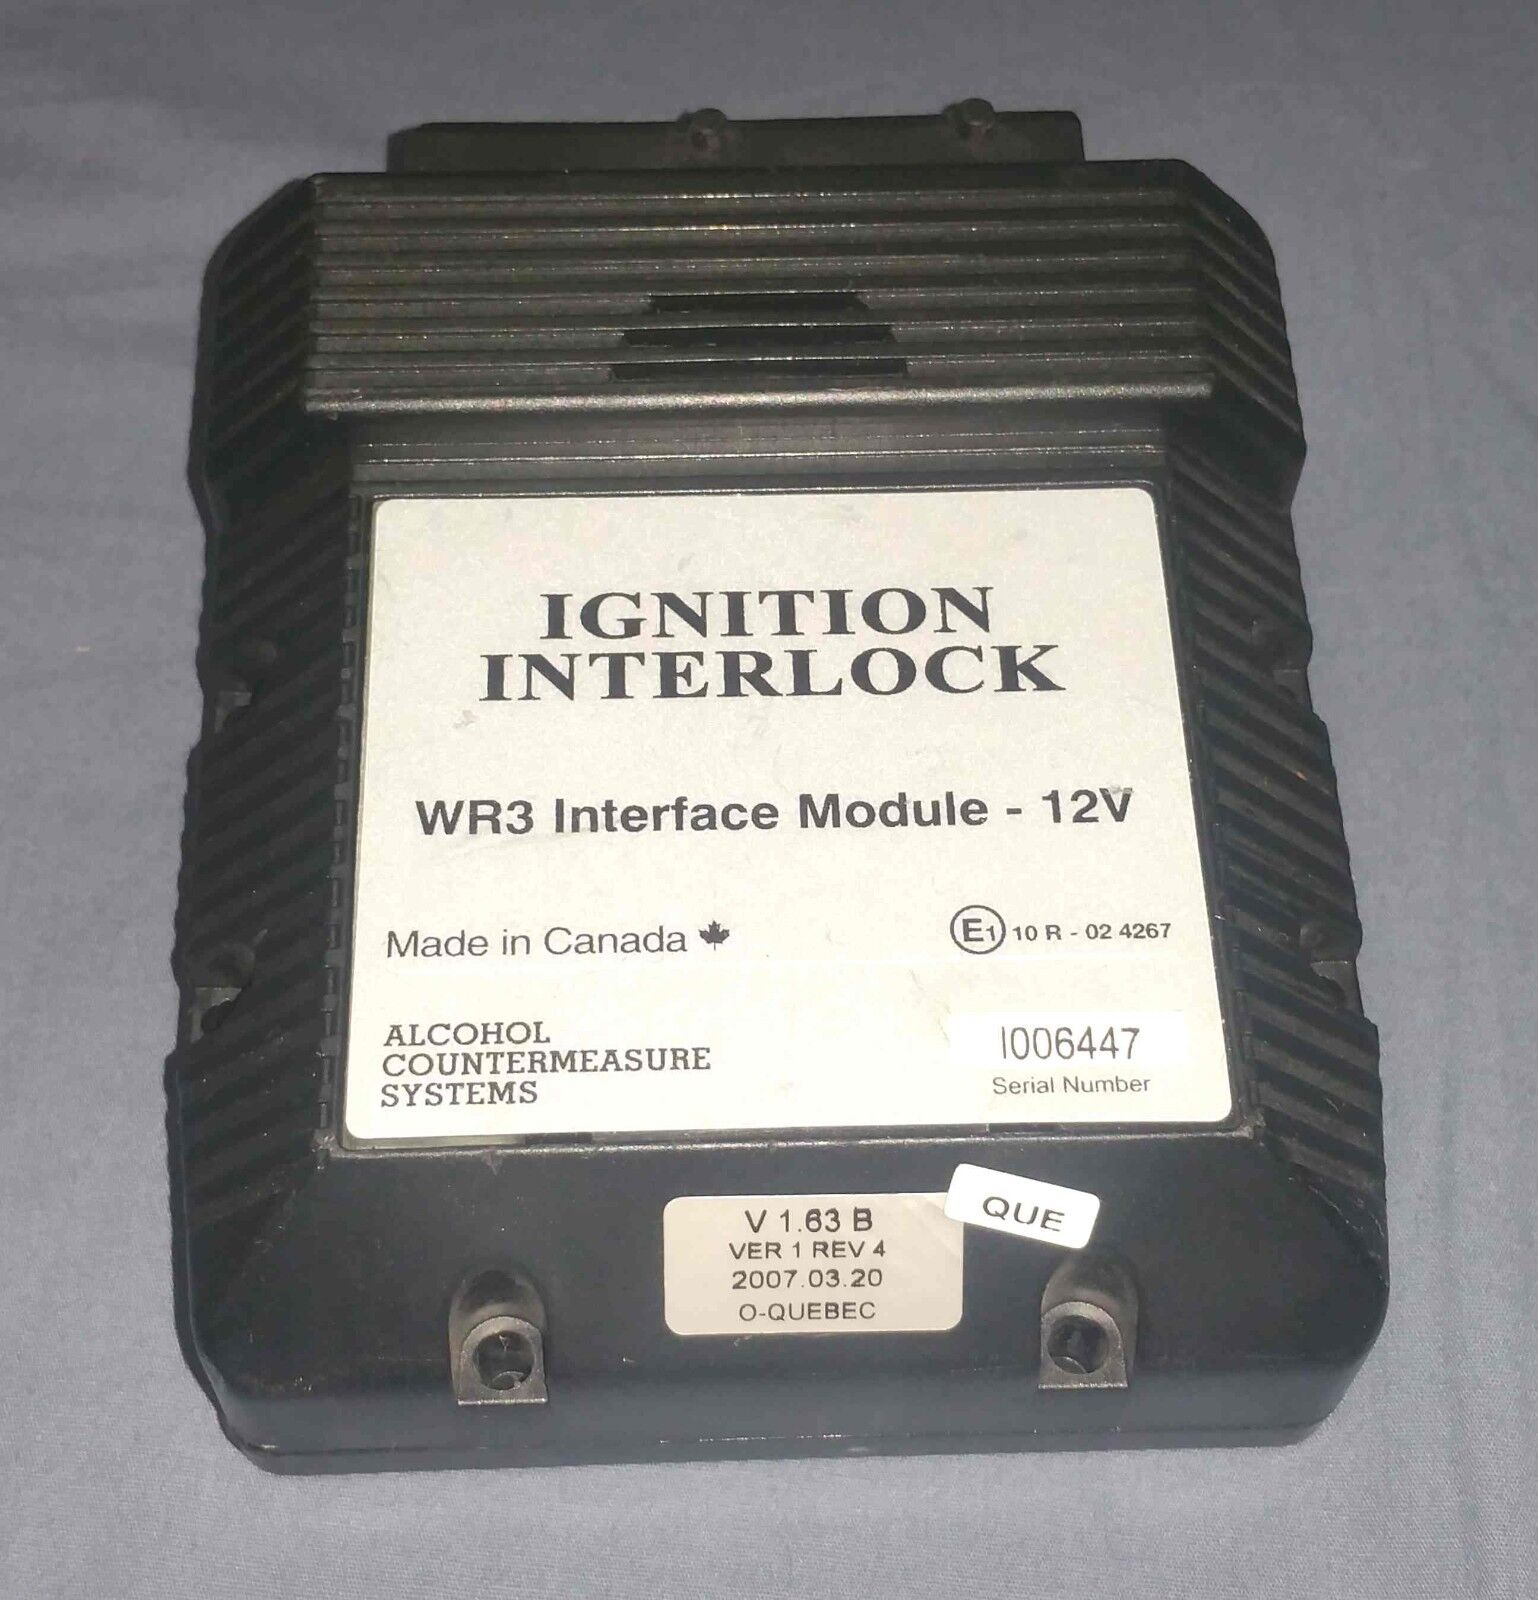 Ignition Interlock WR3 Interface Module - 12V - Alcohol Countermeasure Systems